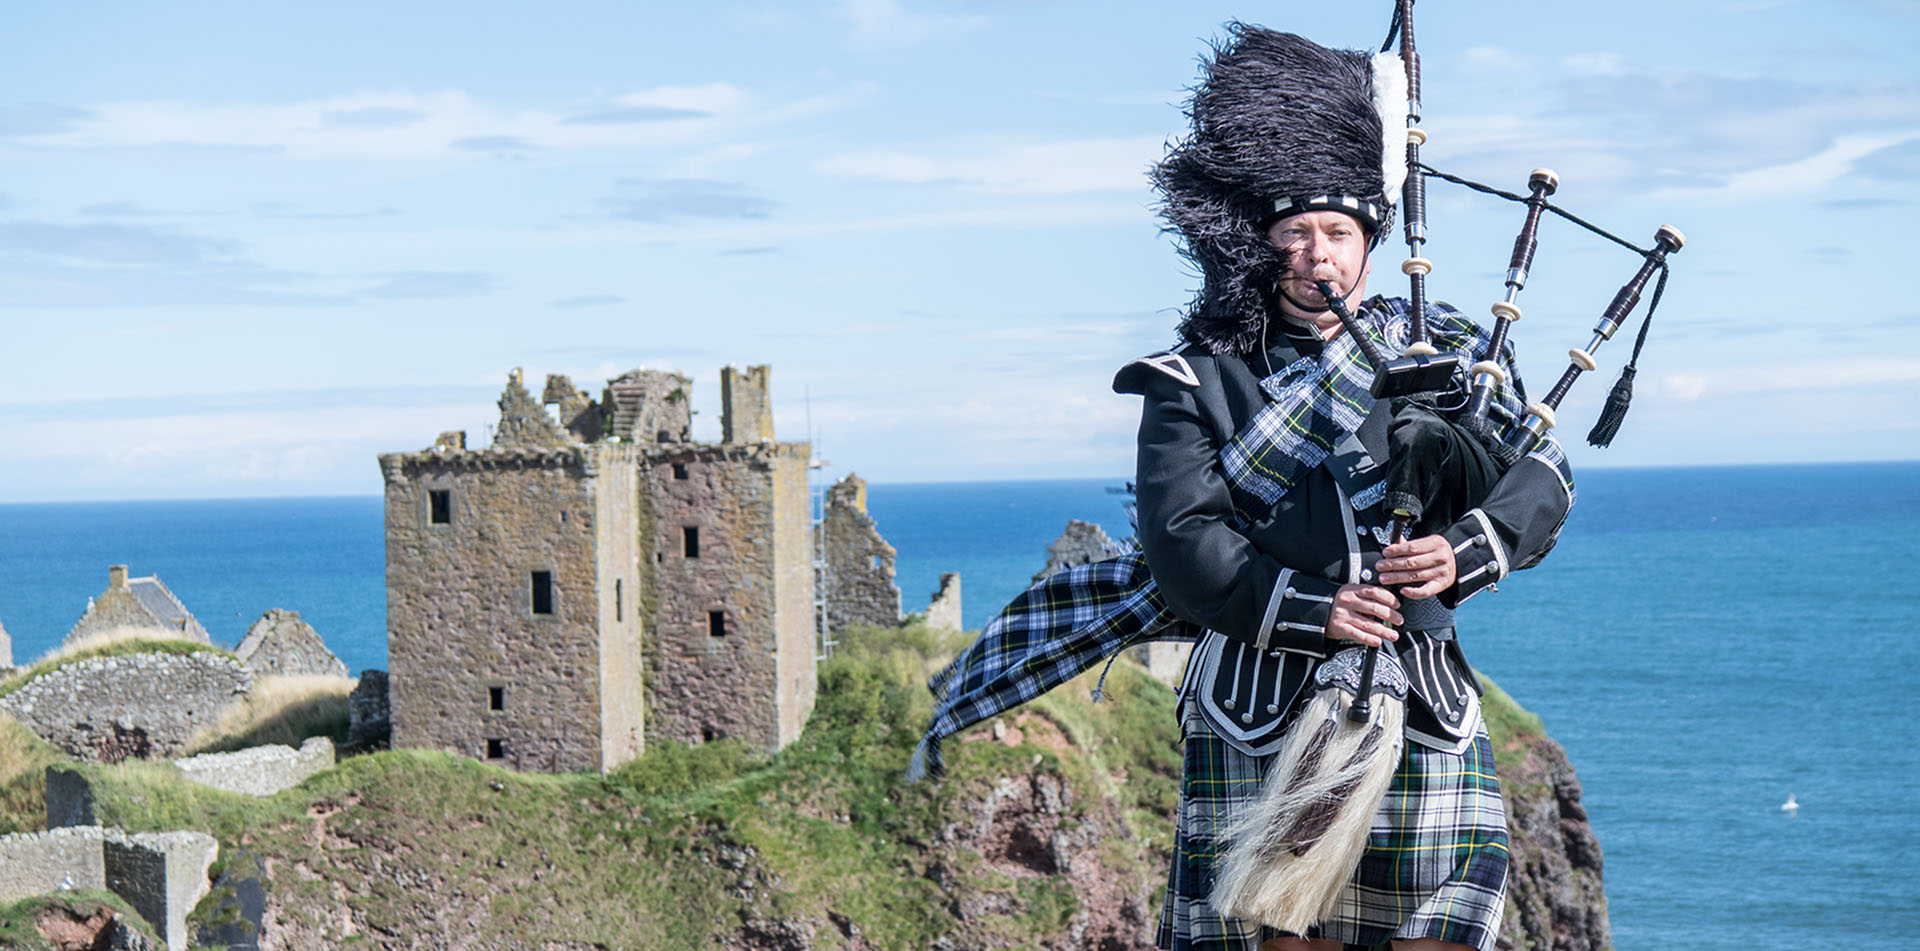 Scottish Bagpiper at Urquhart Castle, Scotland